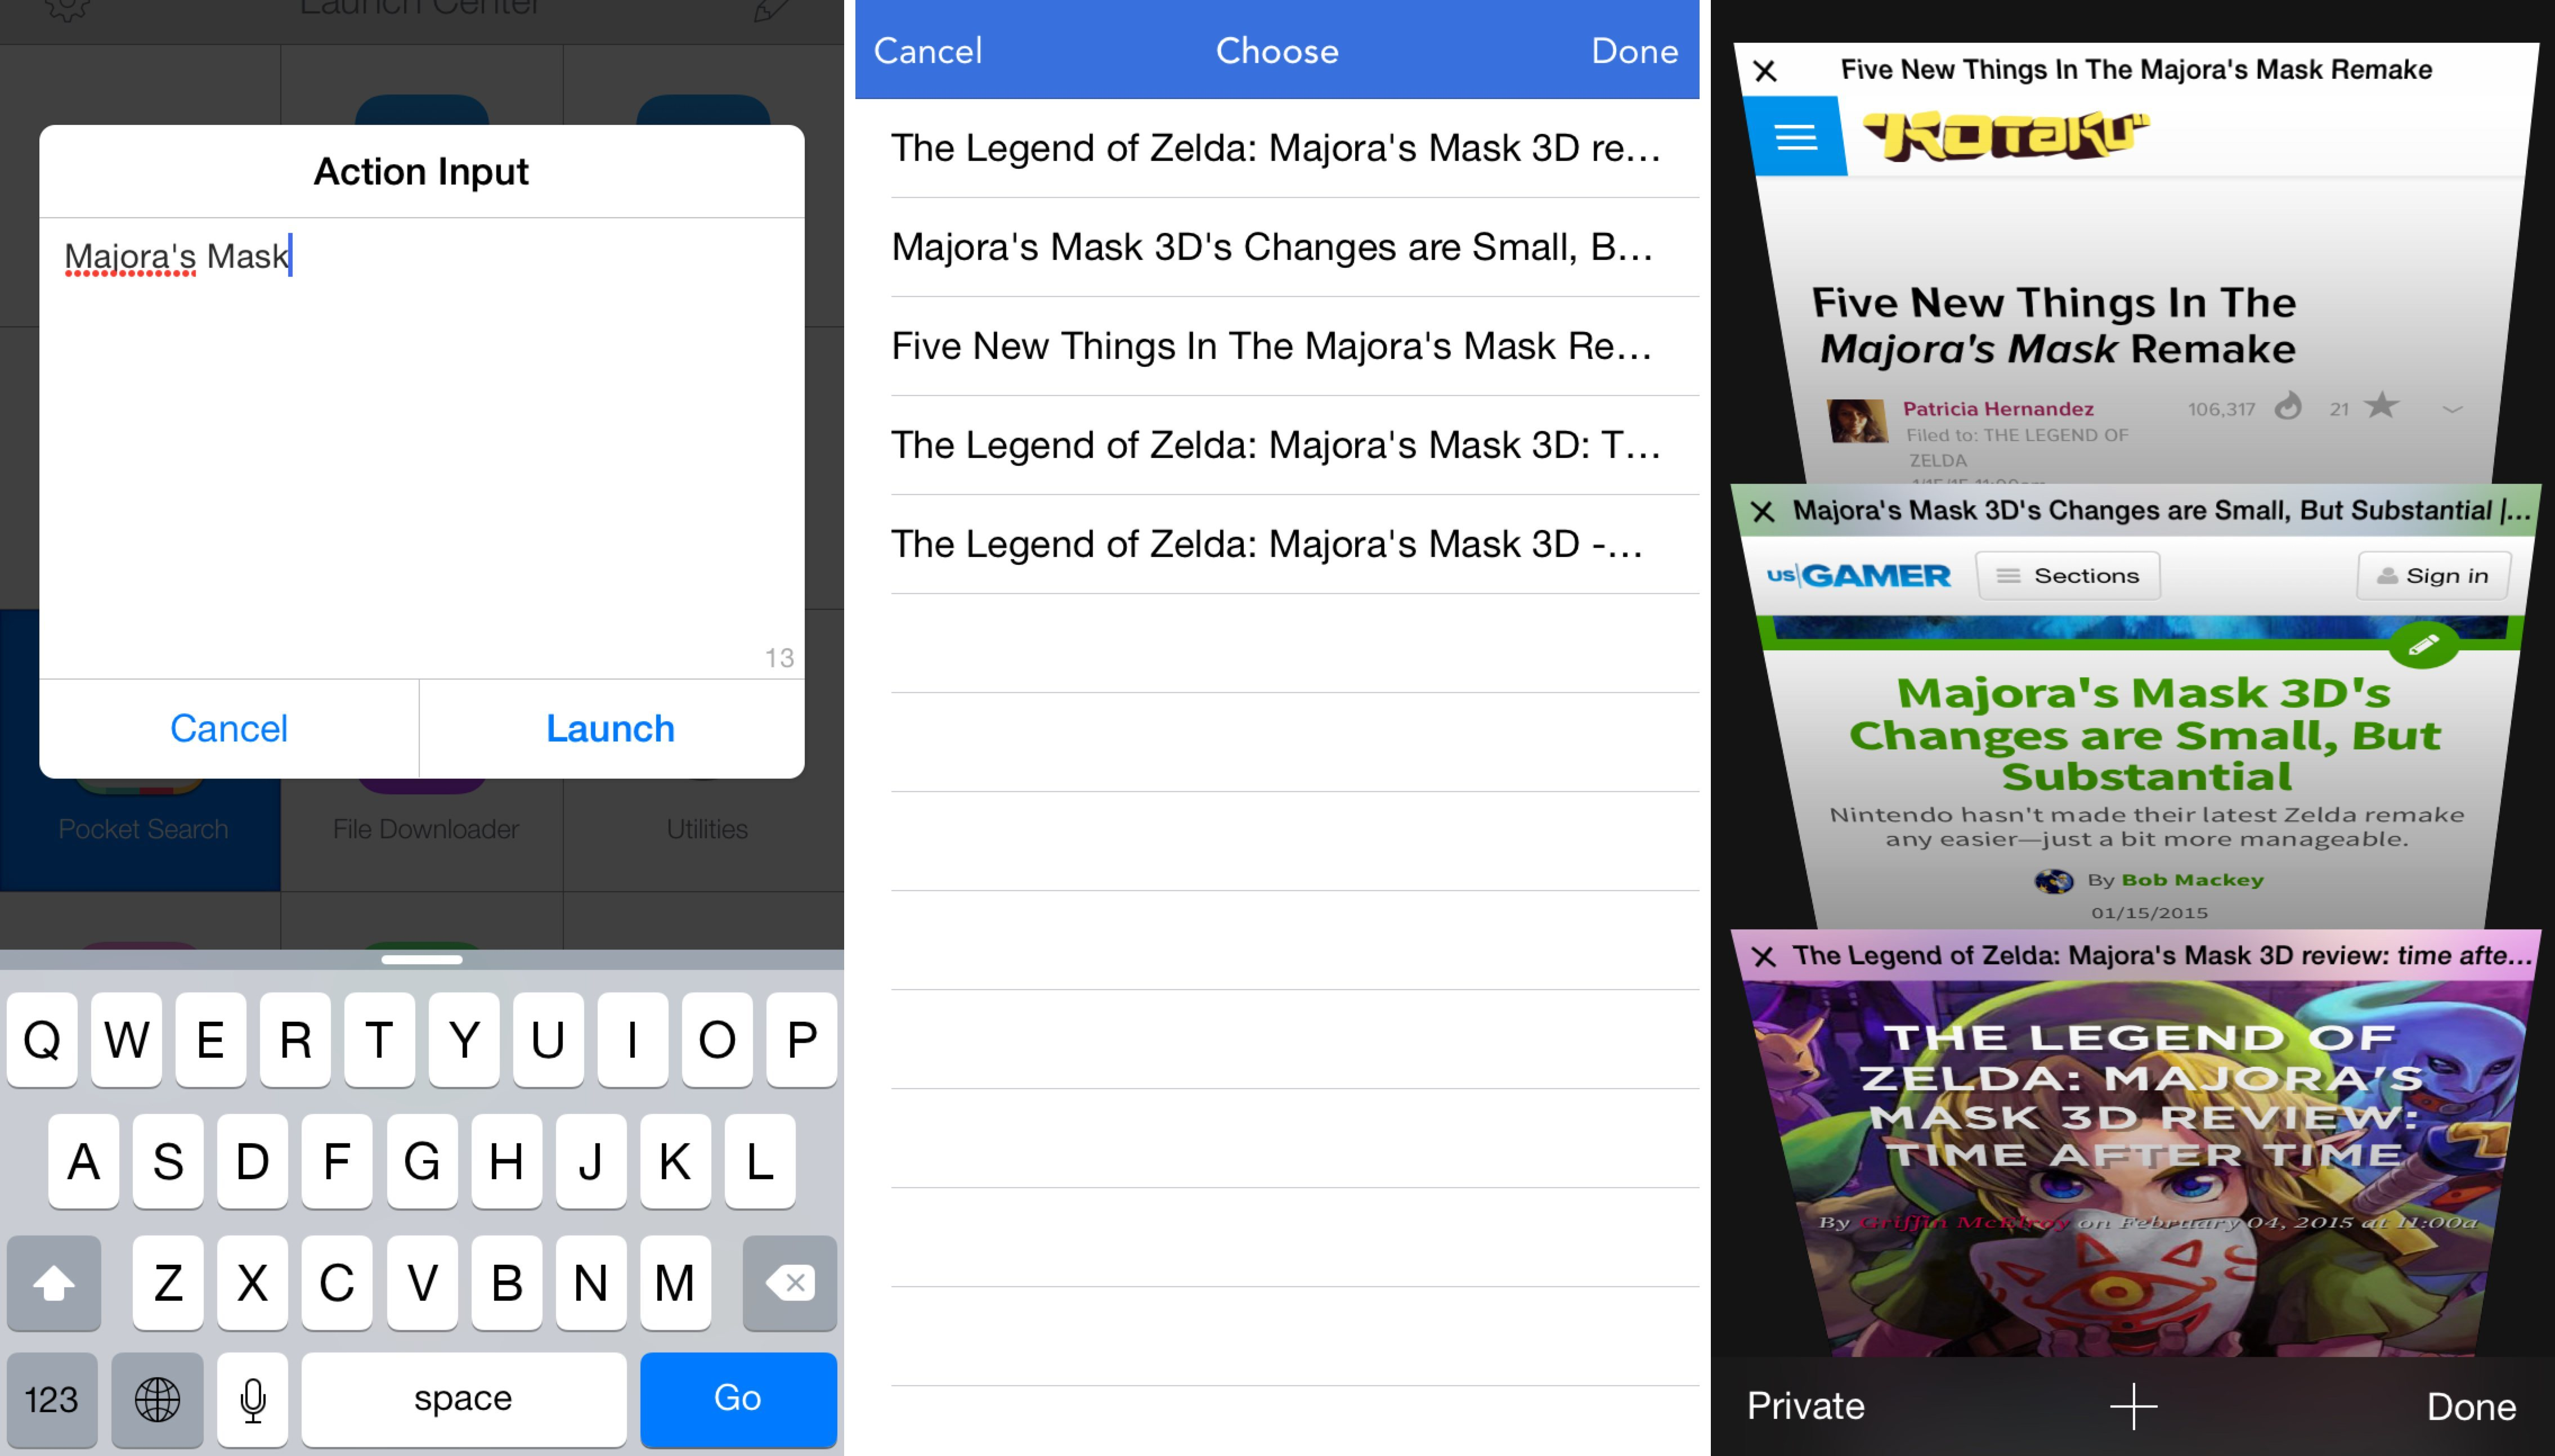 Searching for an article from Launch Center Pro and opening multiple results in Safari at once.